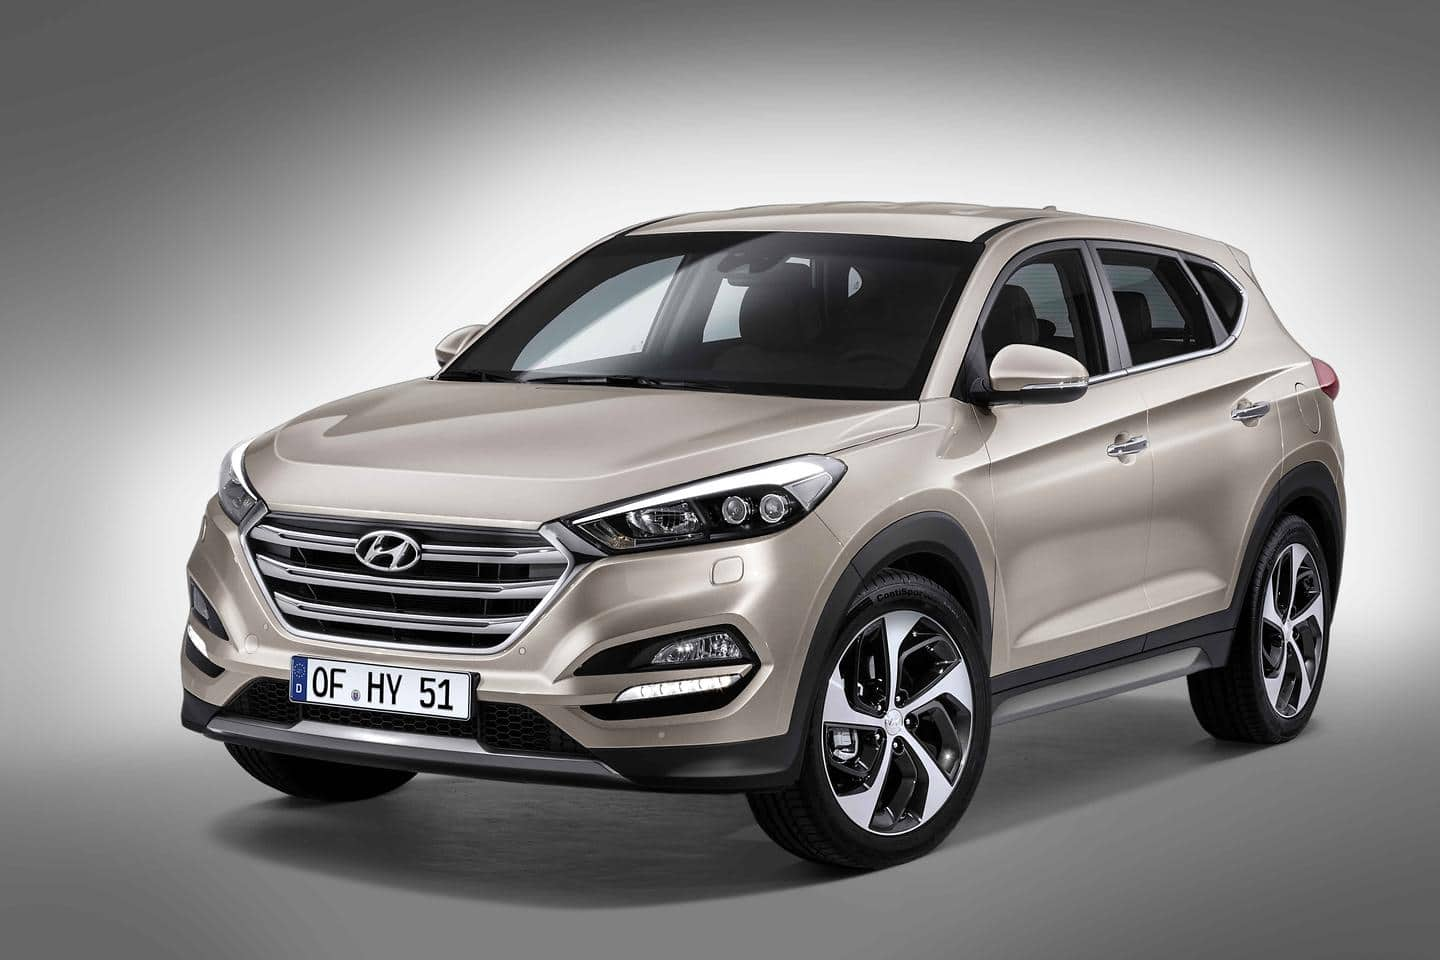 The All-New Tucson : Shifting perceptions through bold design and technology